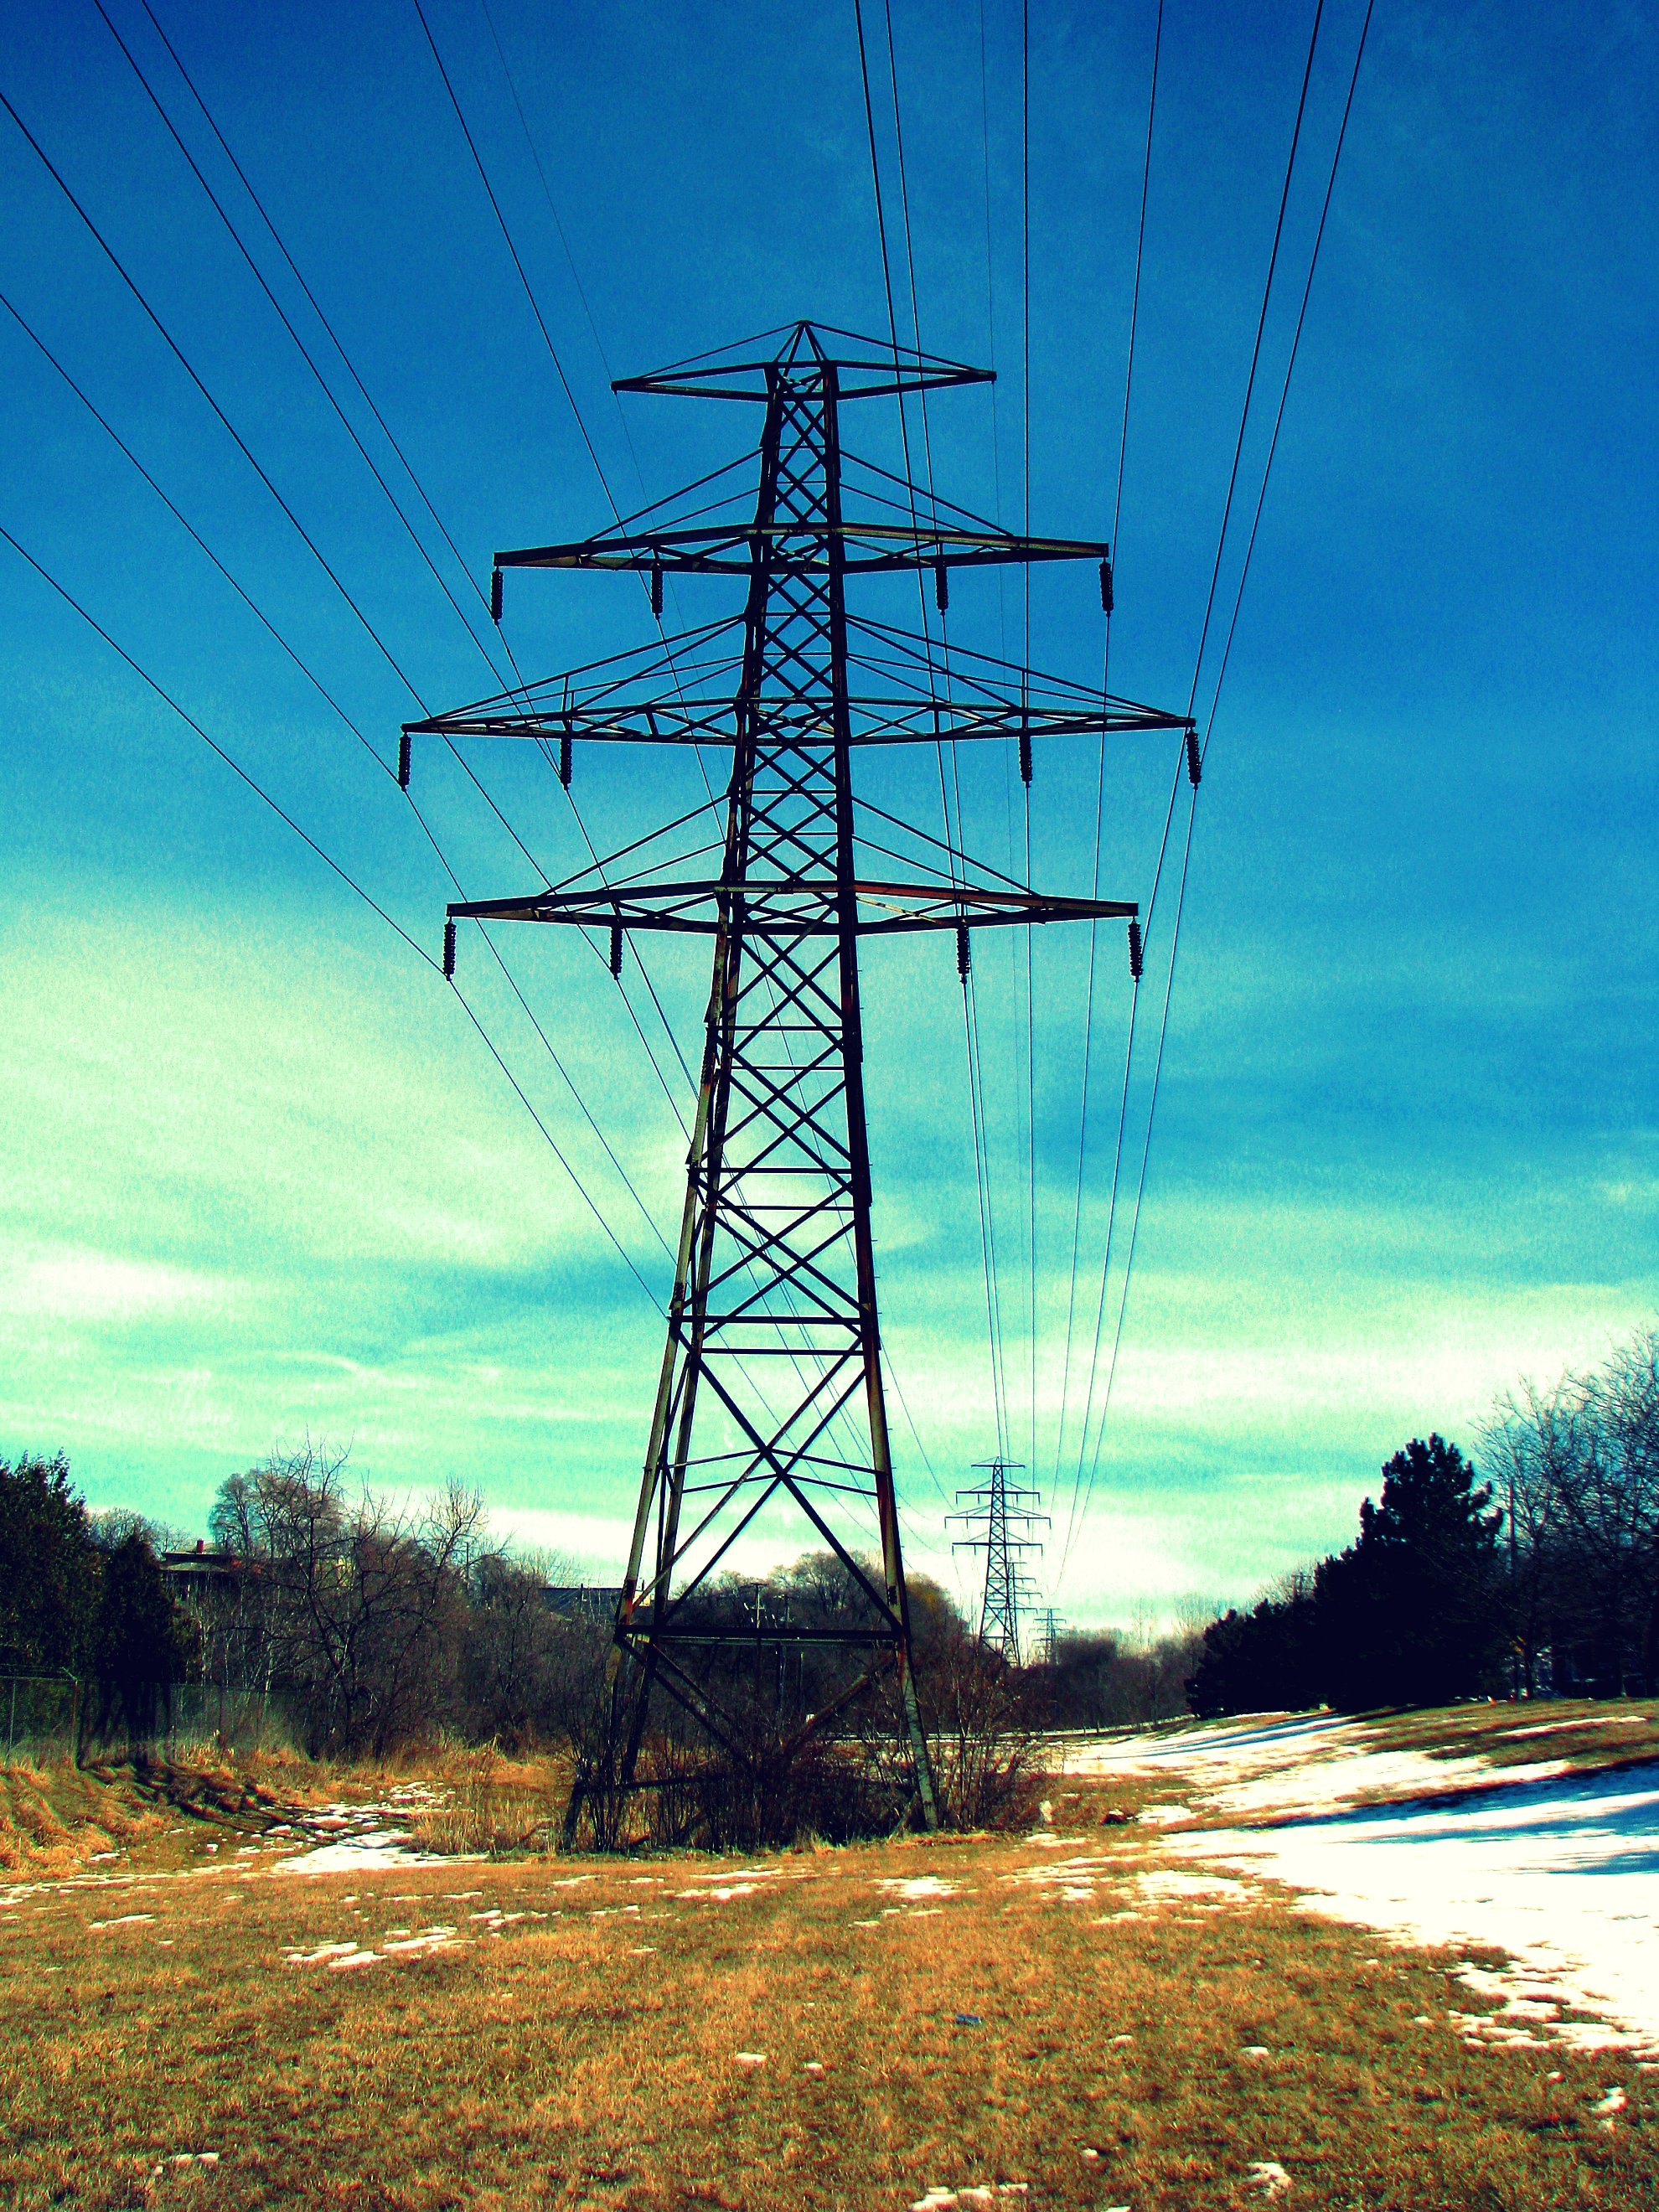 What Is Transmission >> File:Power Tower (1).jpg - Wikimedia Commons